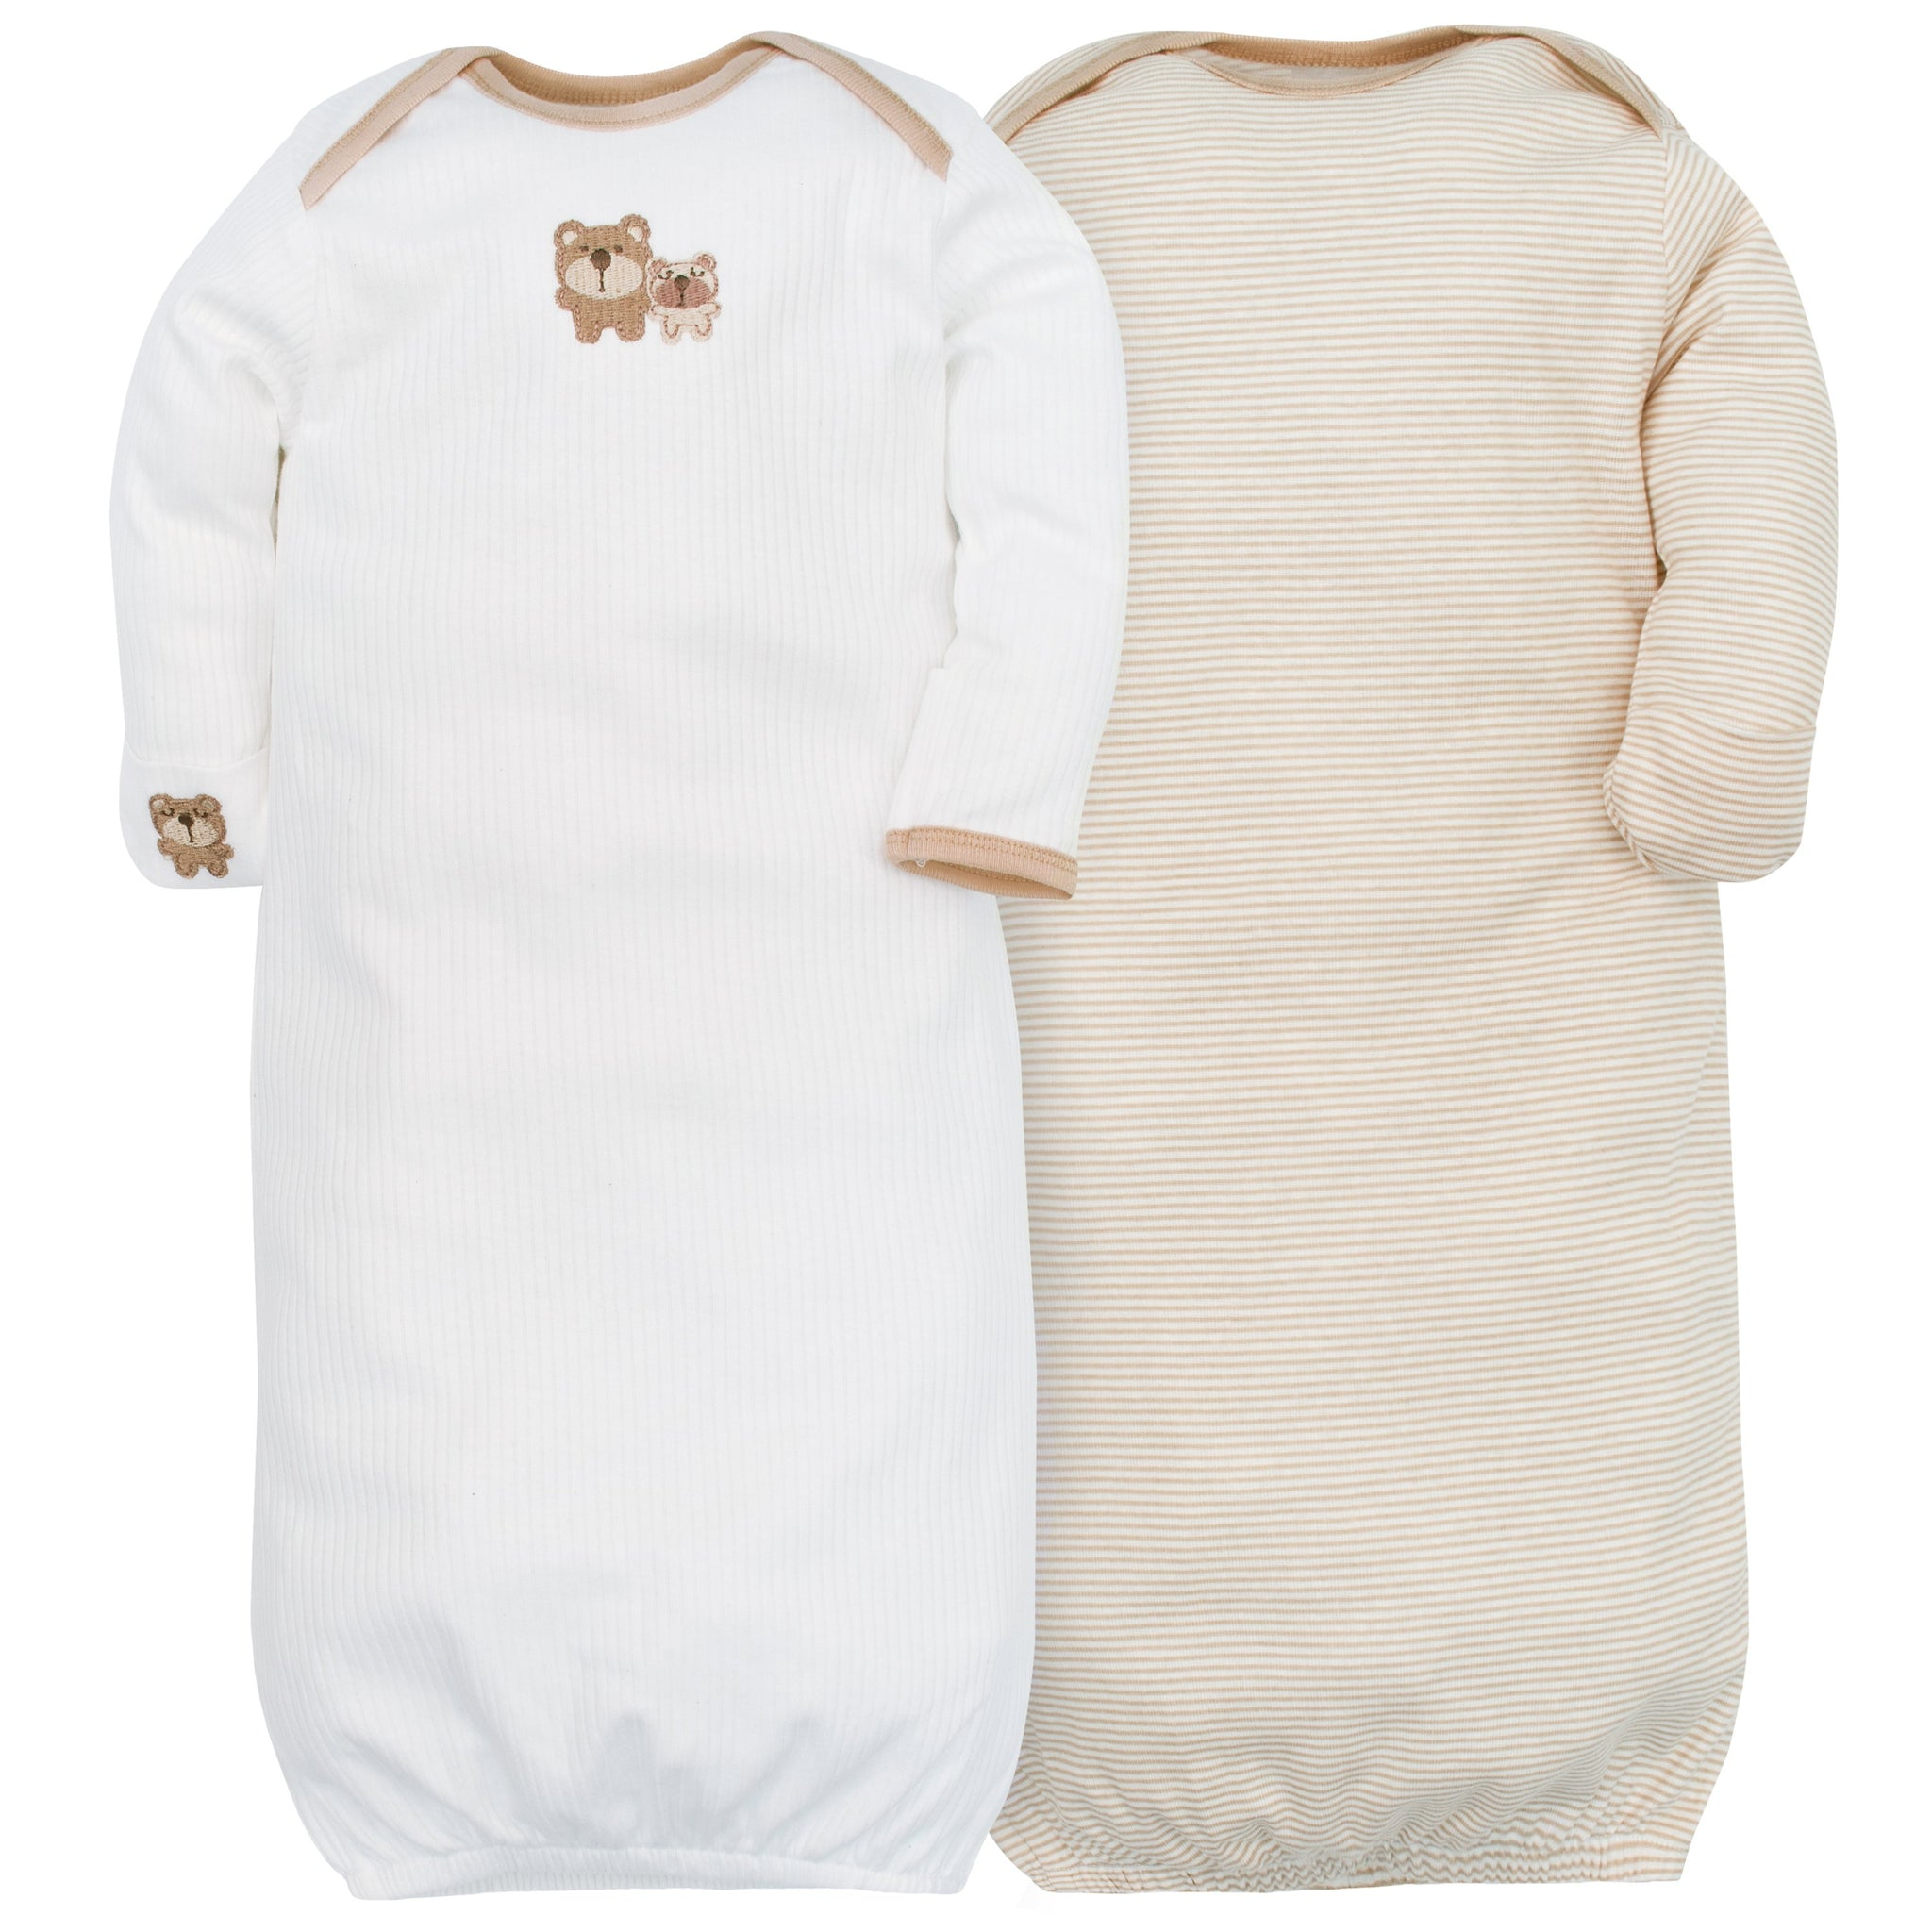 2-Pack Neutral Brown Bear Mitten Cuff Gowns-Gerber Childrenswear